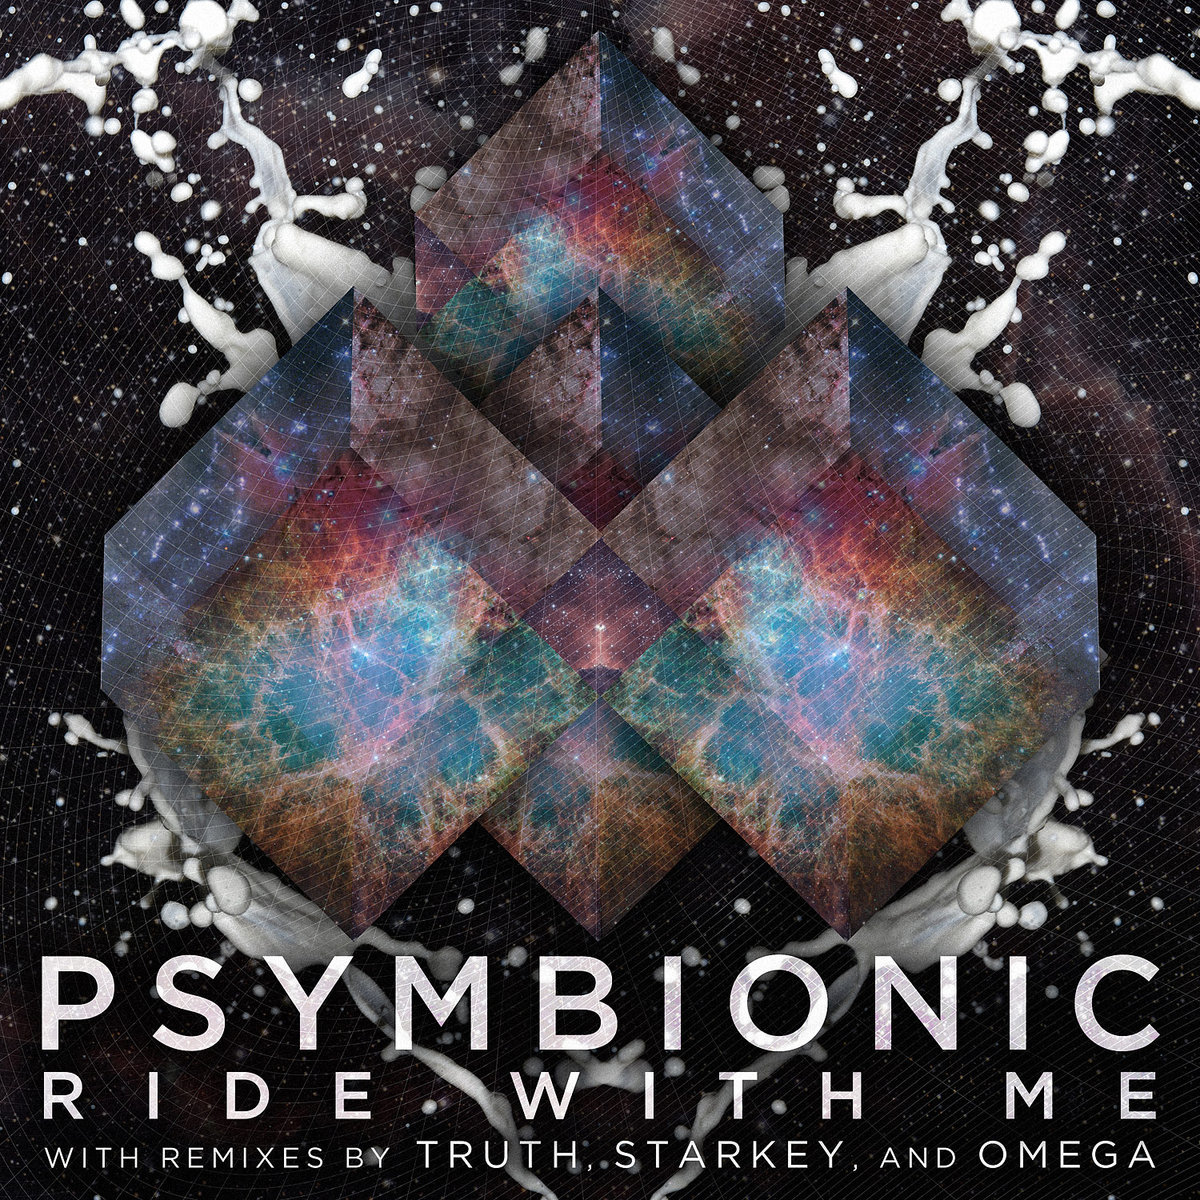 Psymbionic - Ride With Me @ 'Ride With Me' album (electronic, dubstep)